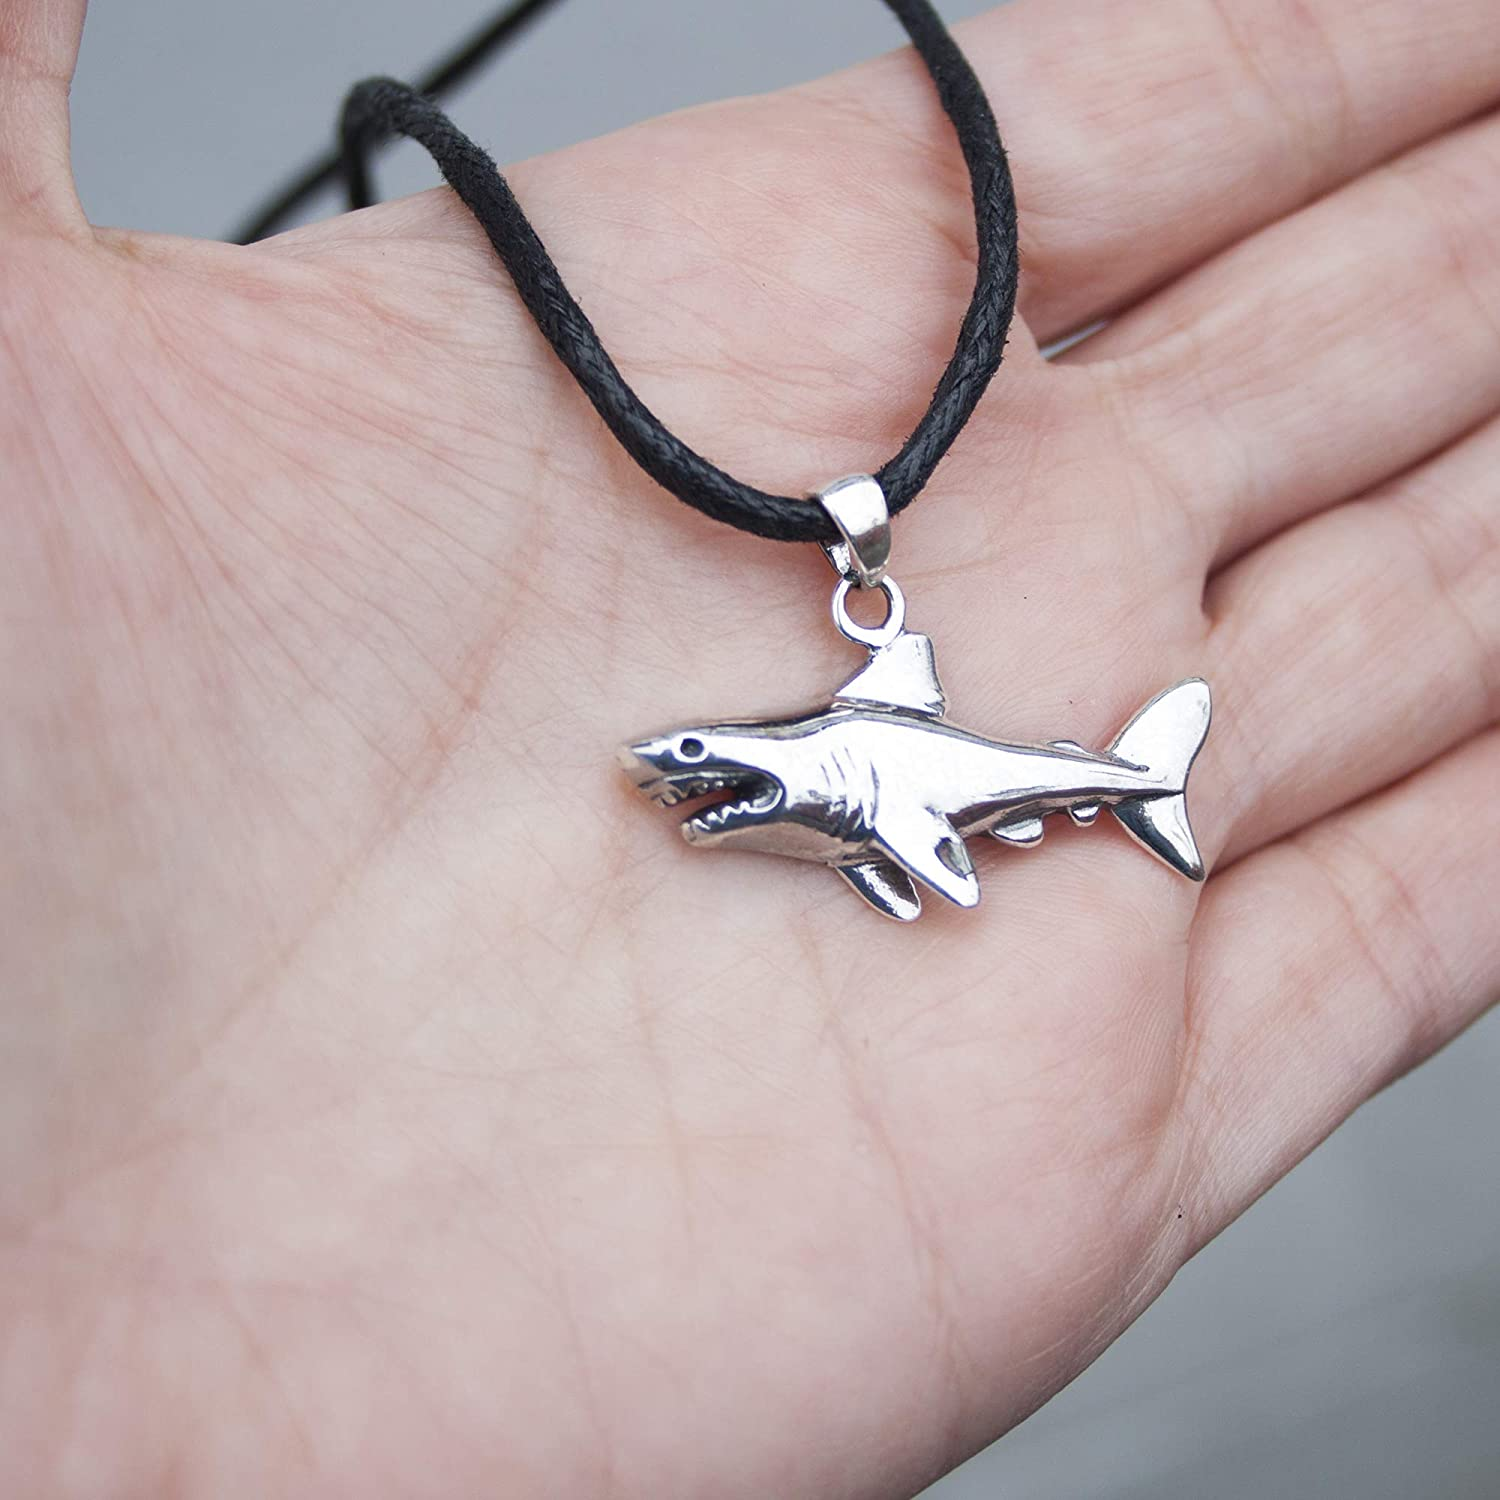 Designer Jewelry Gifts for Scuba Divers and Fishers Shark Fish Pendant Necklace Solid Sterling Silver 925